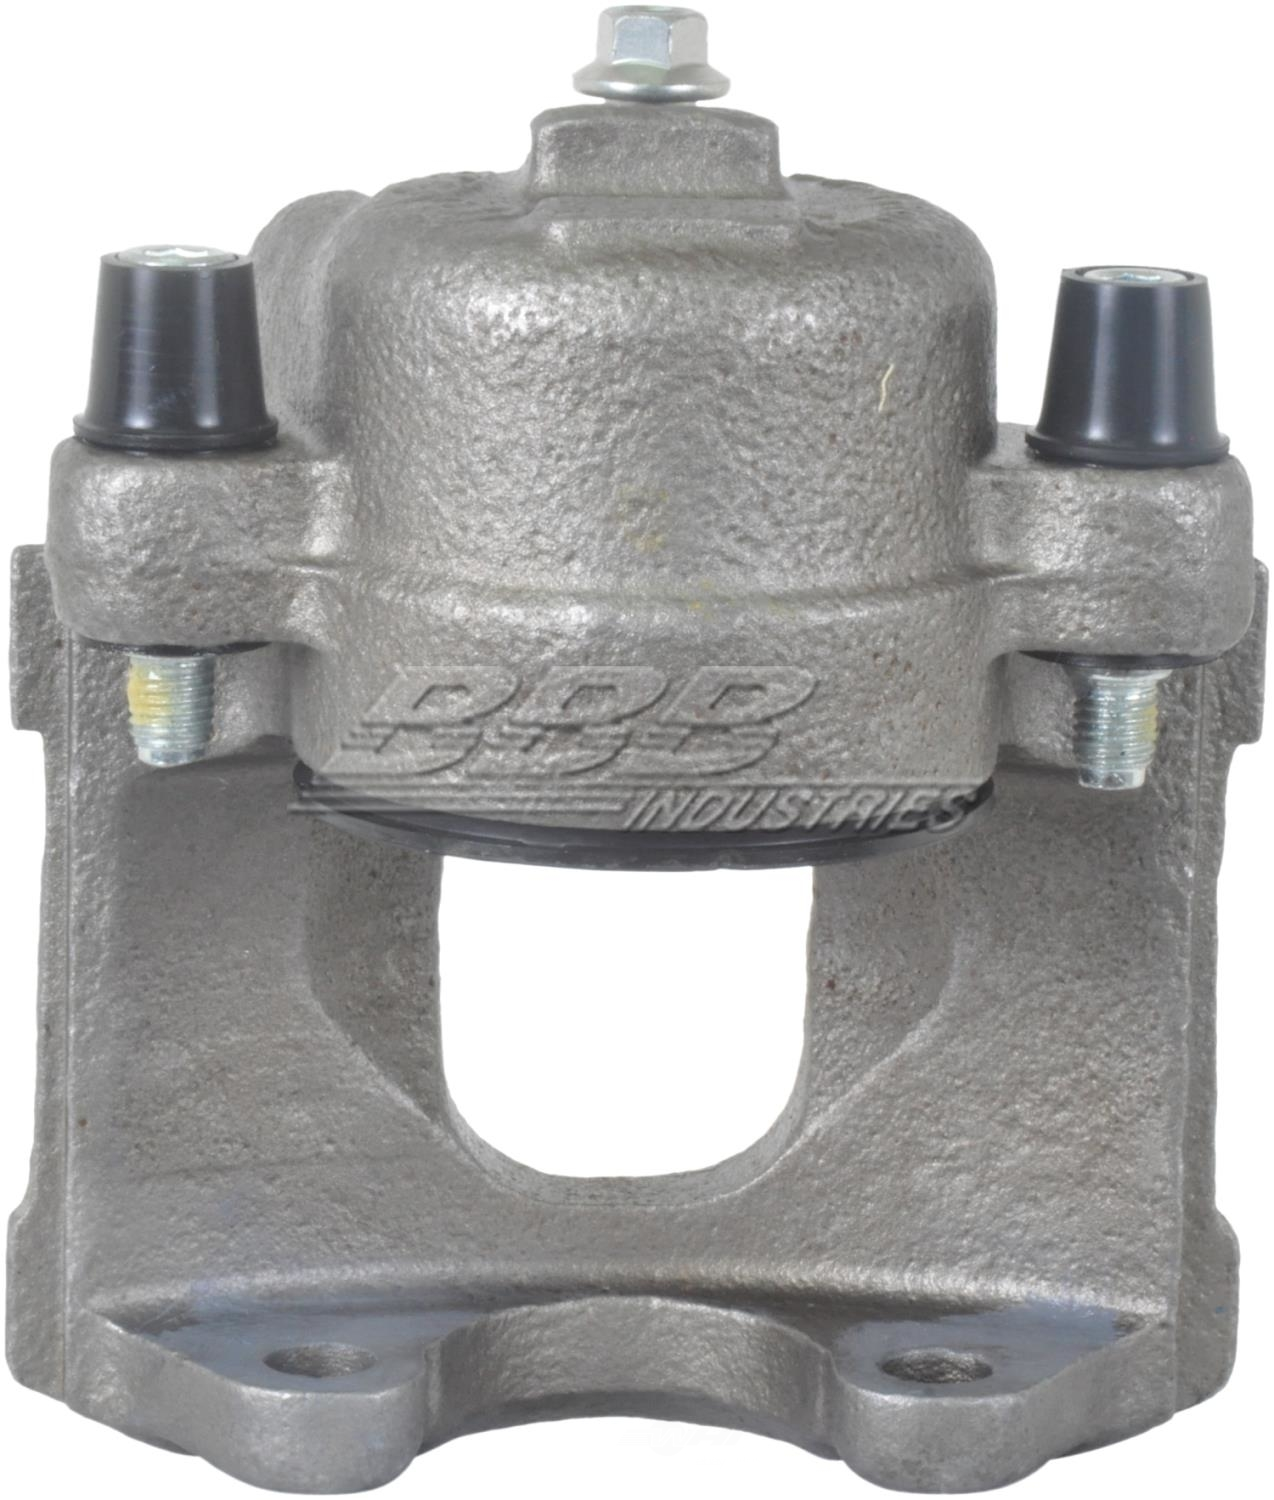 BBB INDUSTRIES - Reman Caliper w/ Installation Hardware - BBA 97-17827A